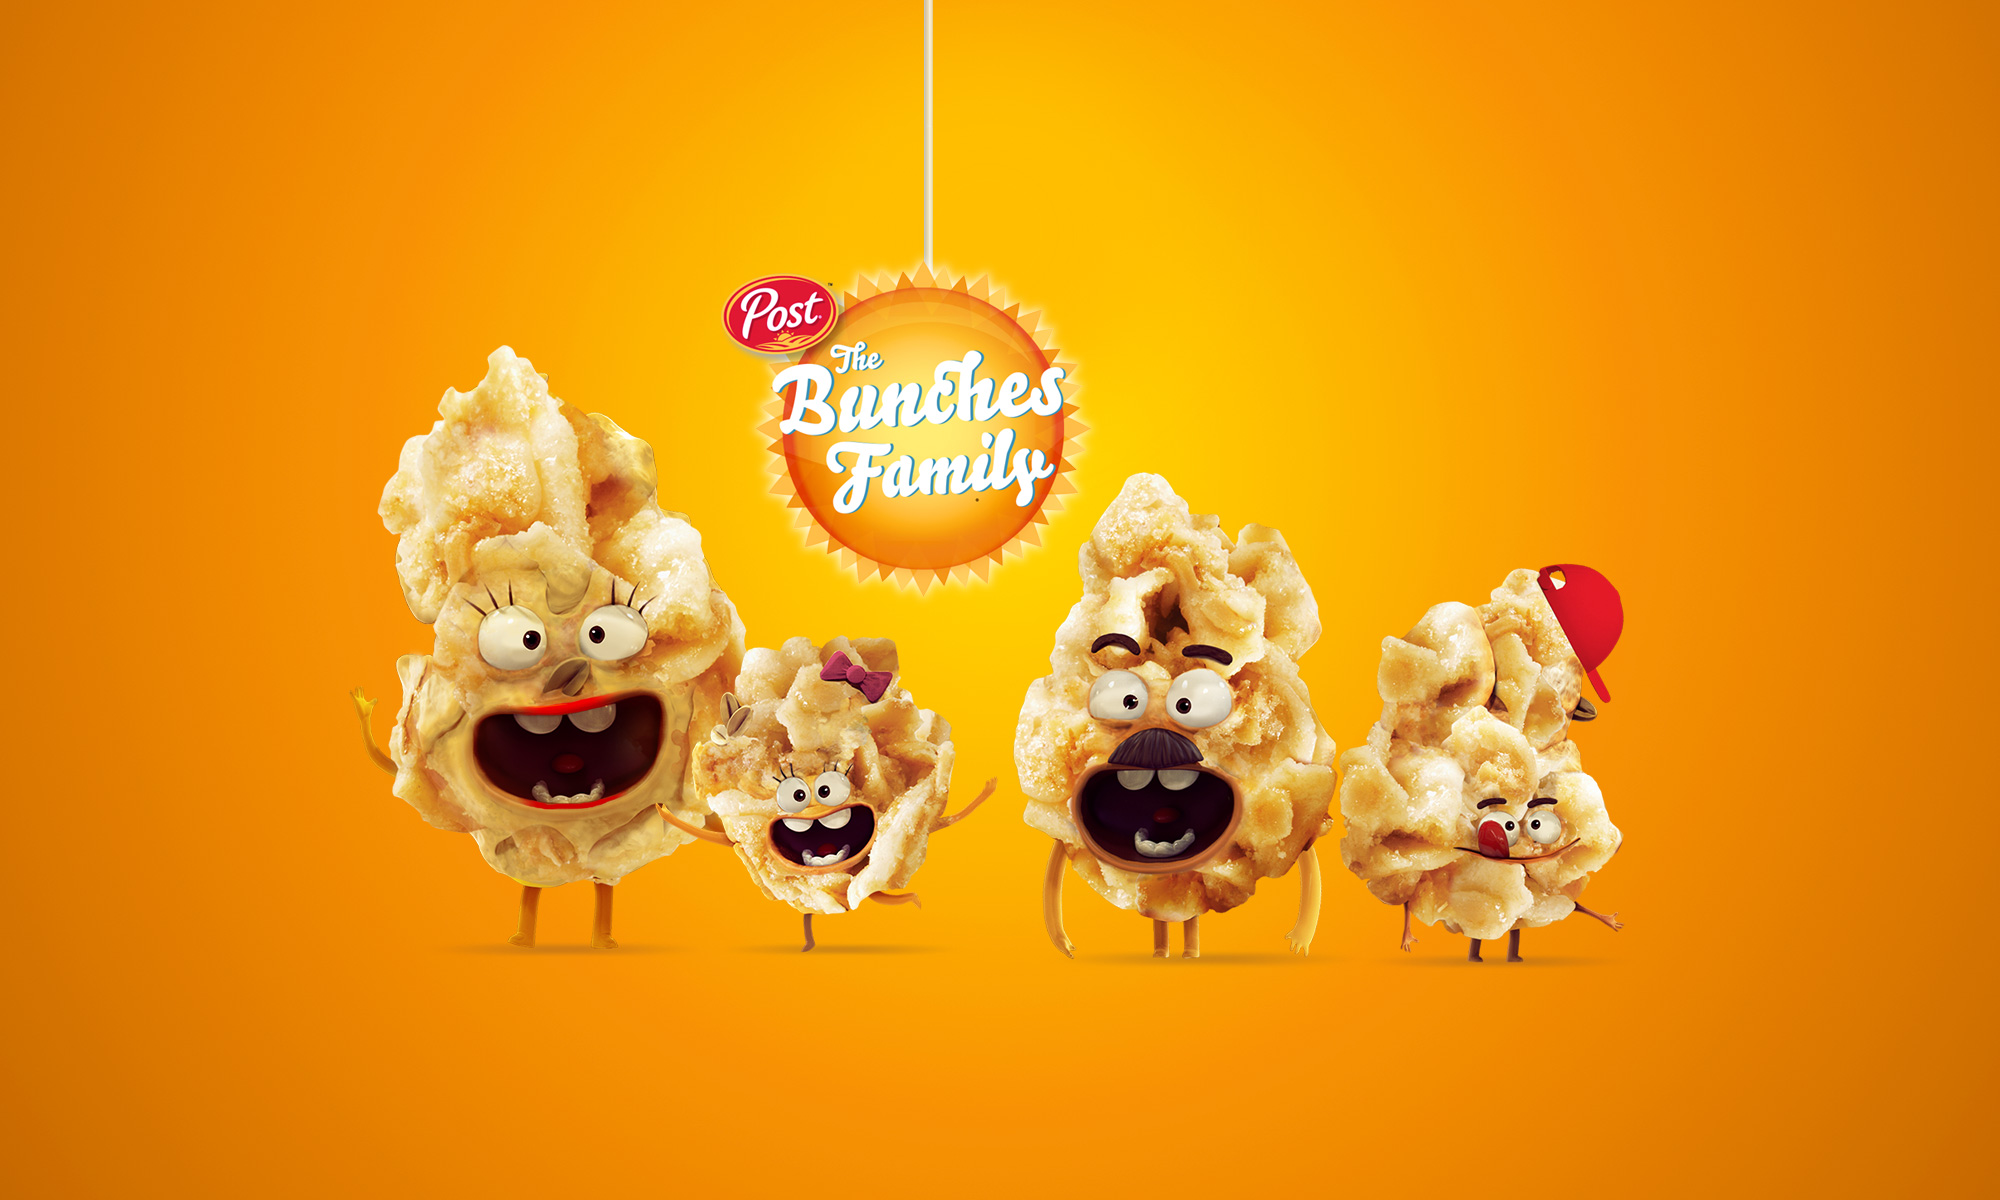 Honey Bunches of Oats Character Creation, Digital and Social Media